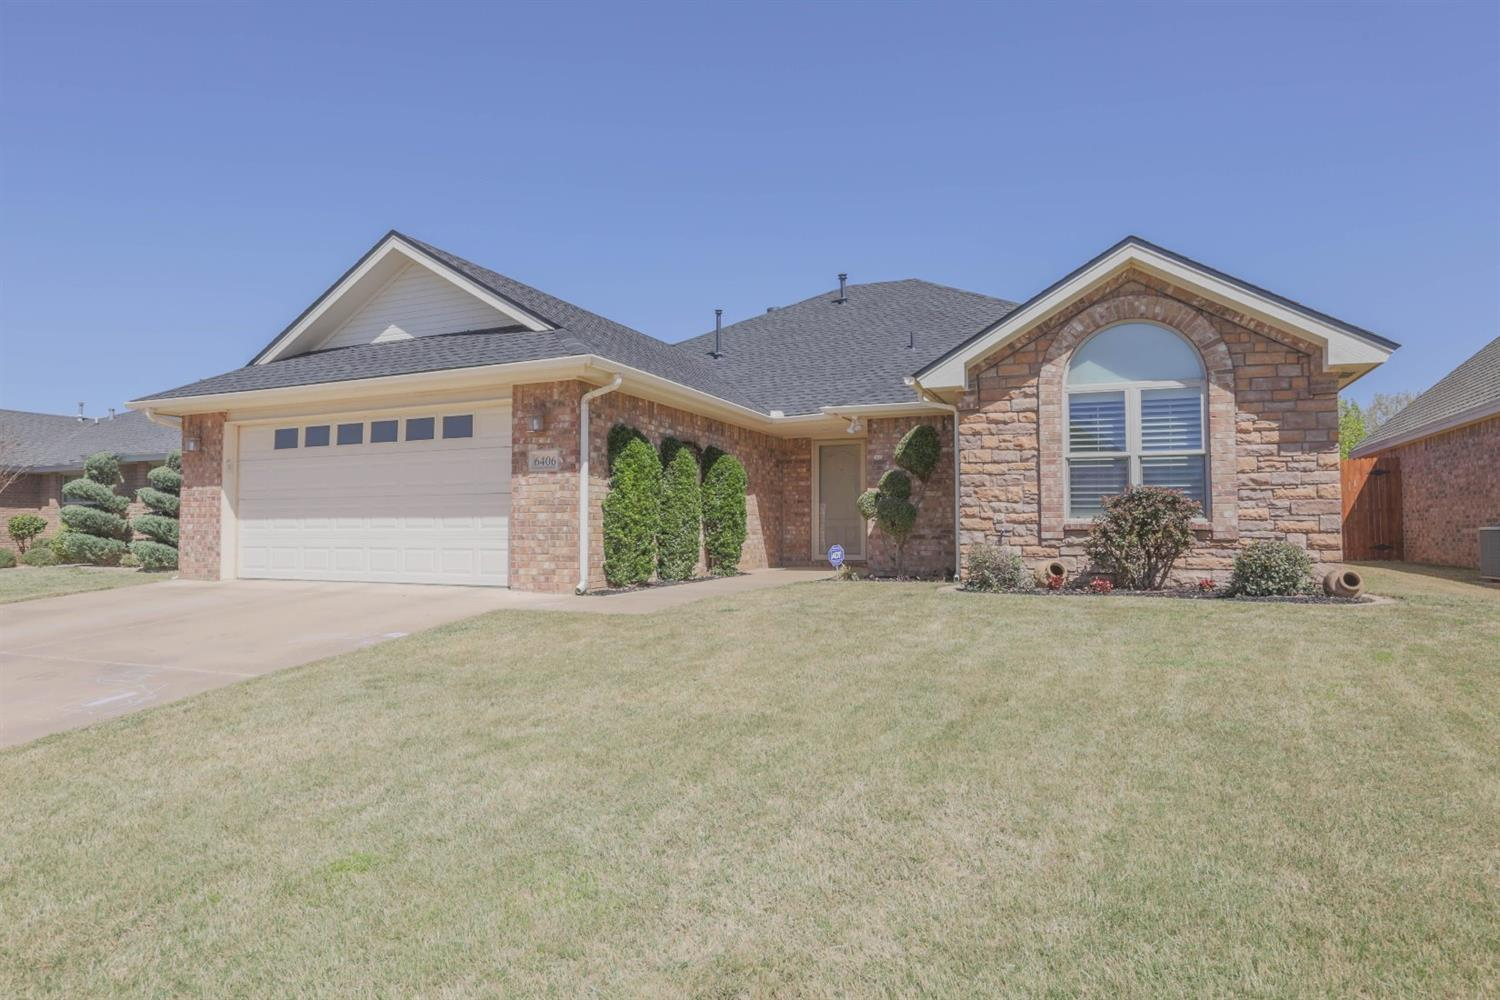 6406 93rd Street, Lubbock in Lubbock County, TX 79424 Home for Sale